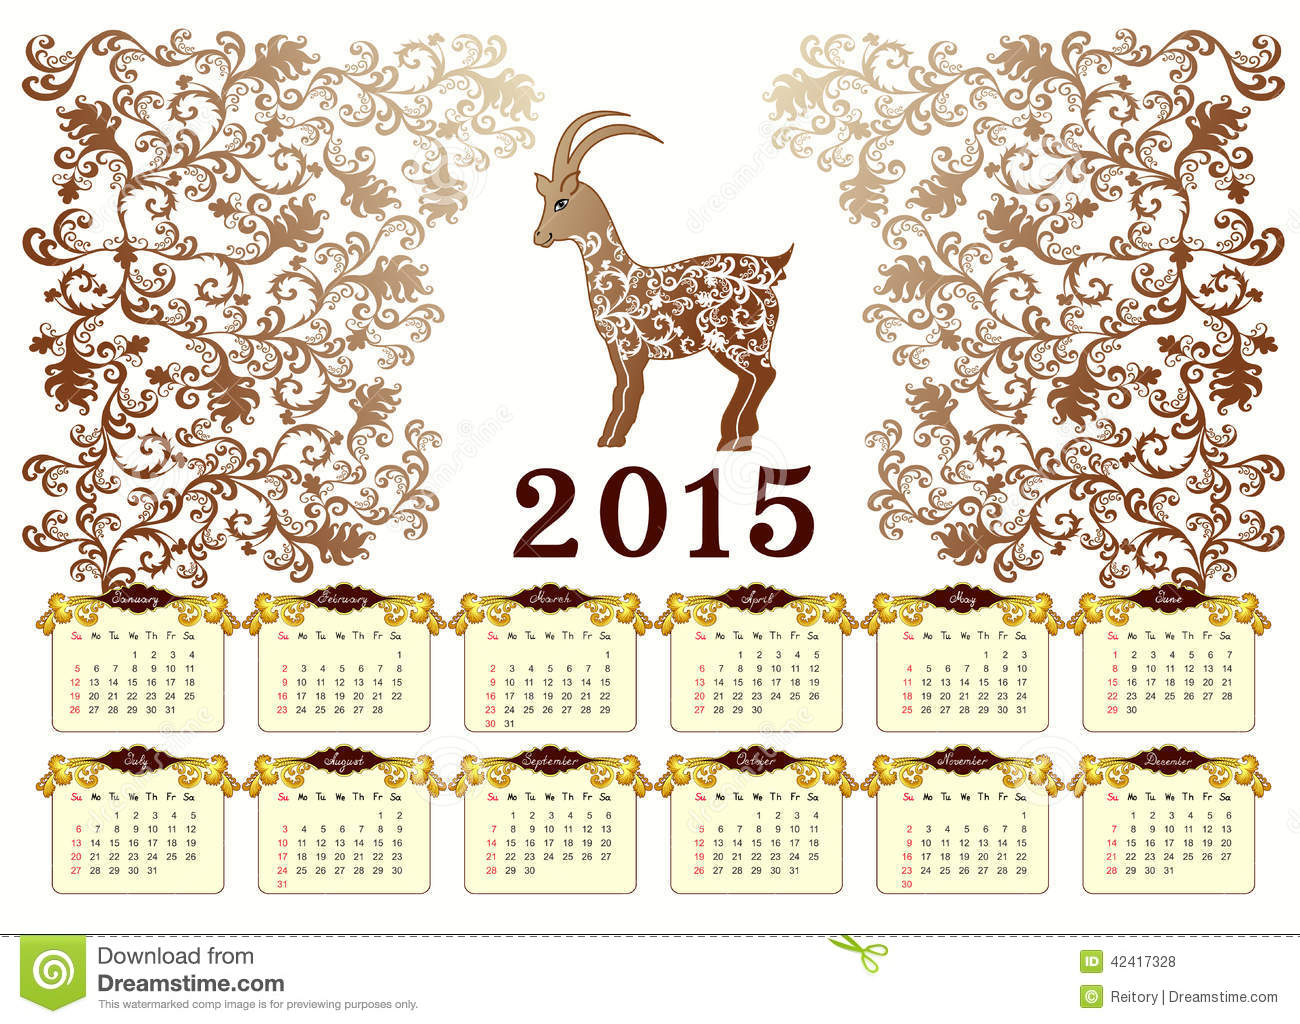 Calendar Vintage 2015 : Calendar for with a goat in vintage style stock